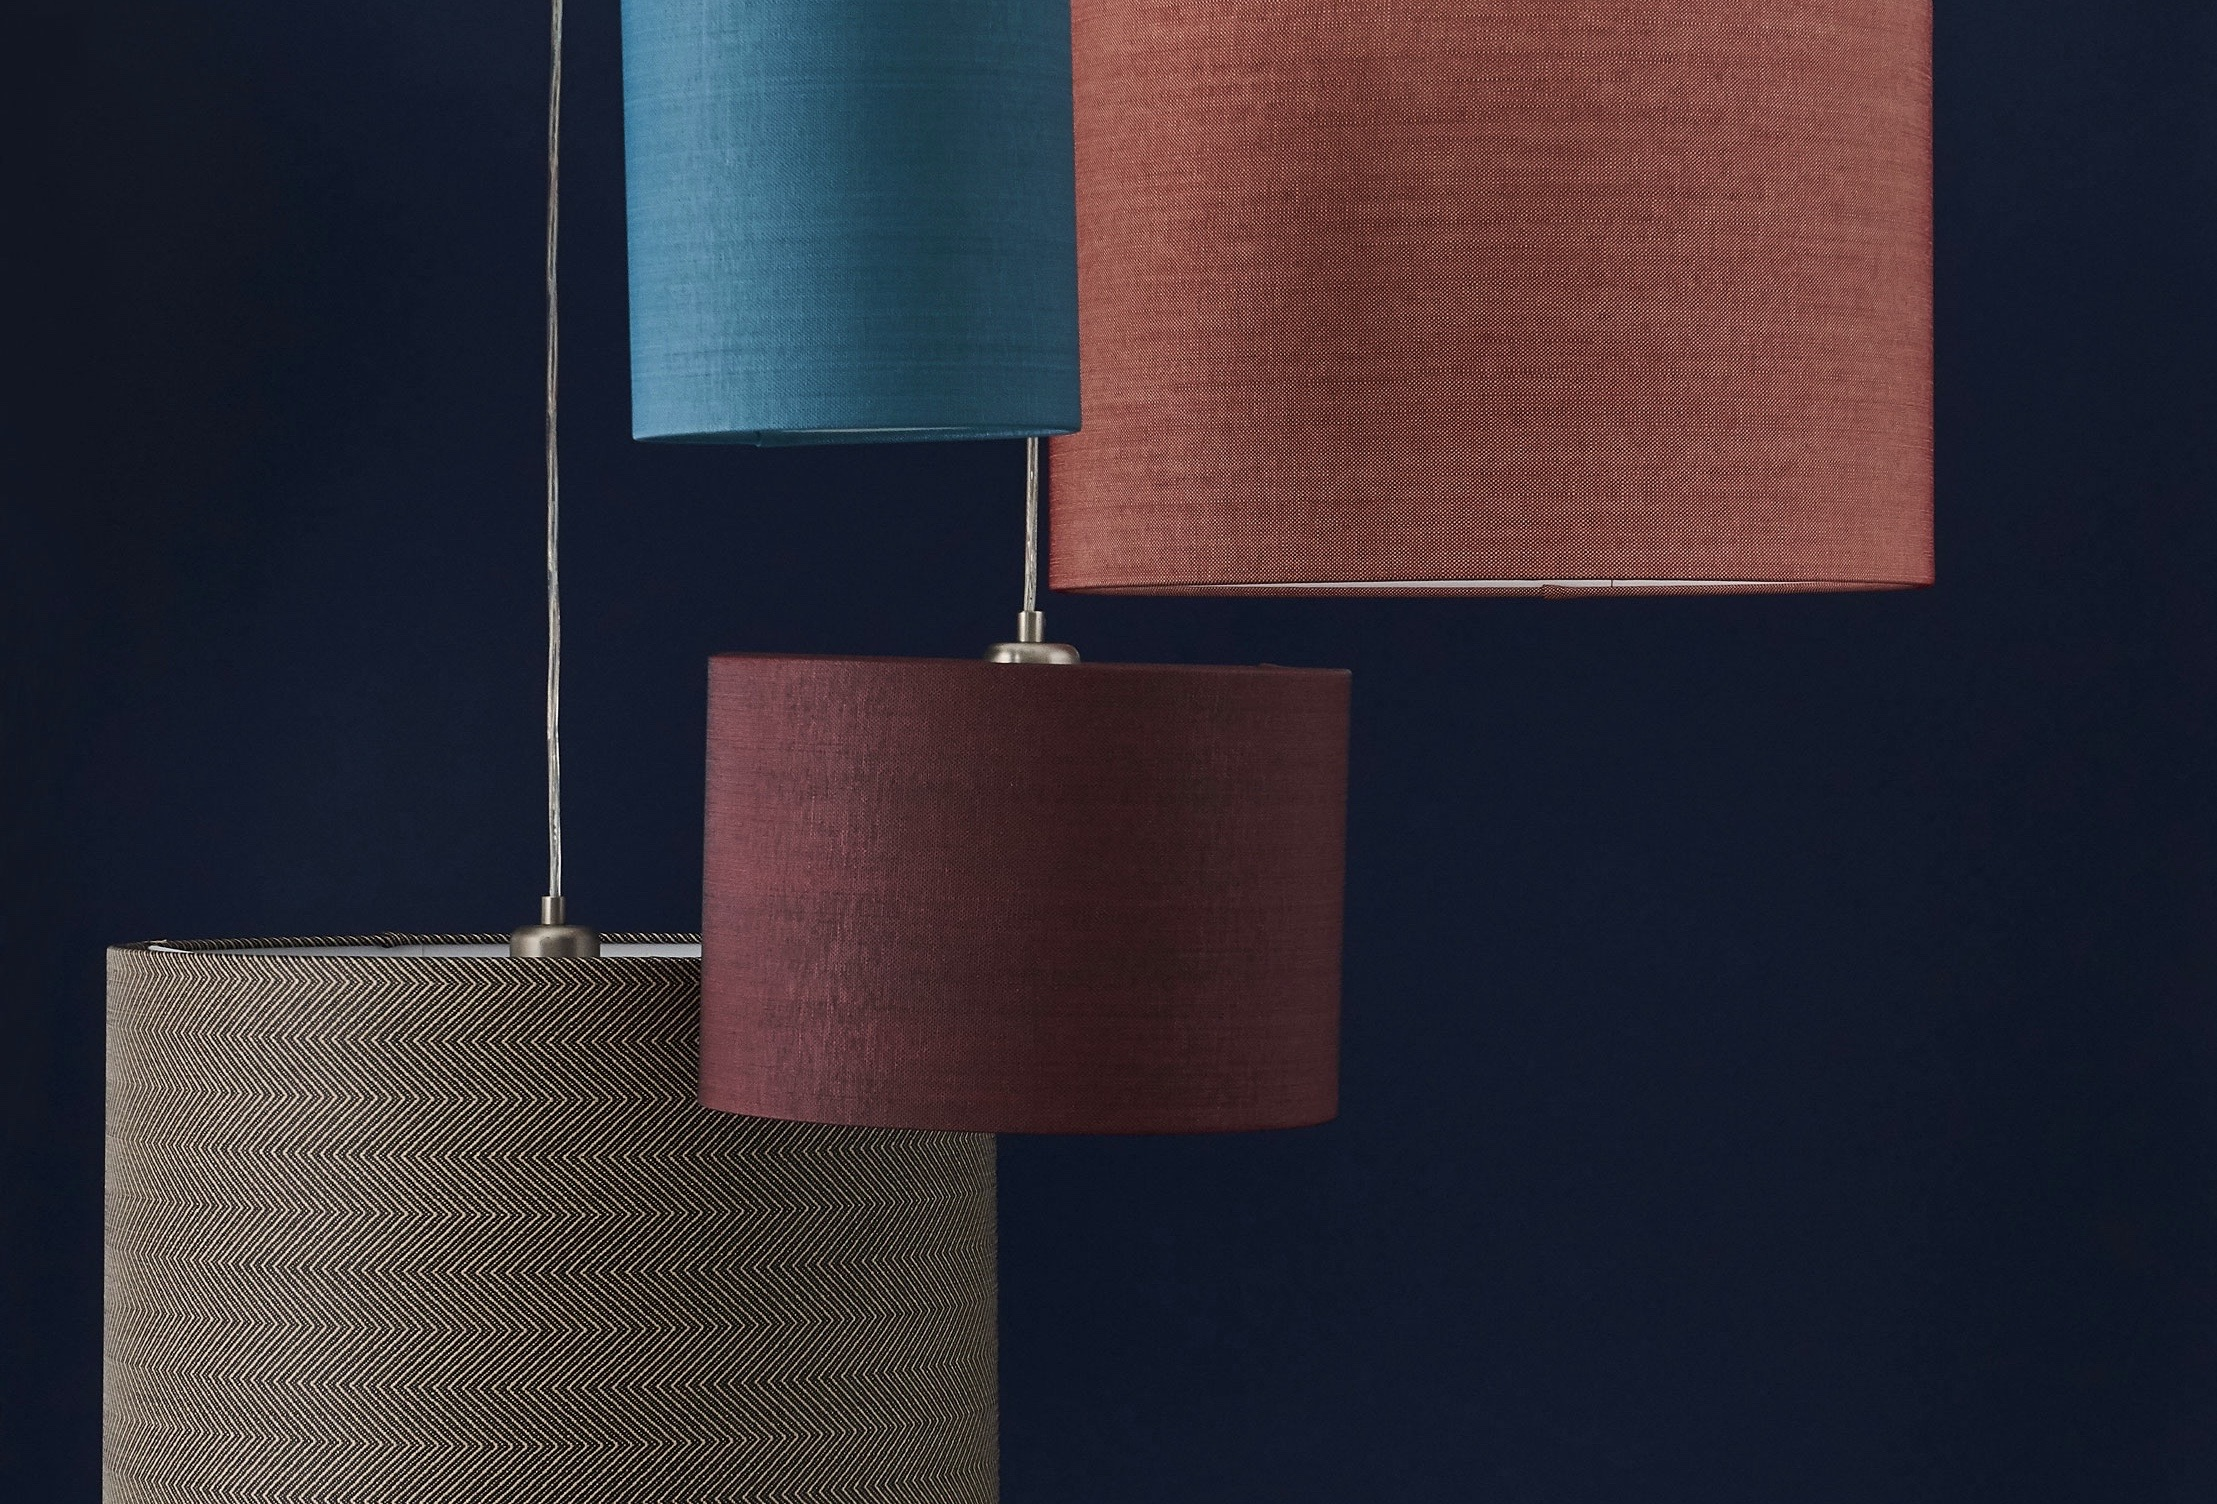 innermost bespoke fabric lampshade collection